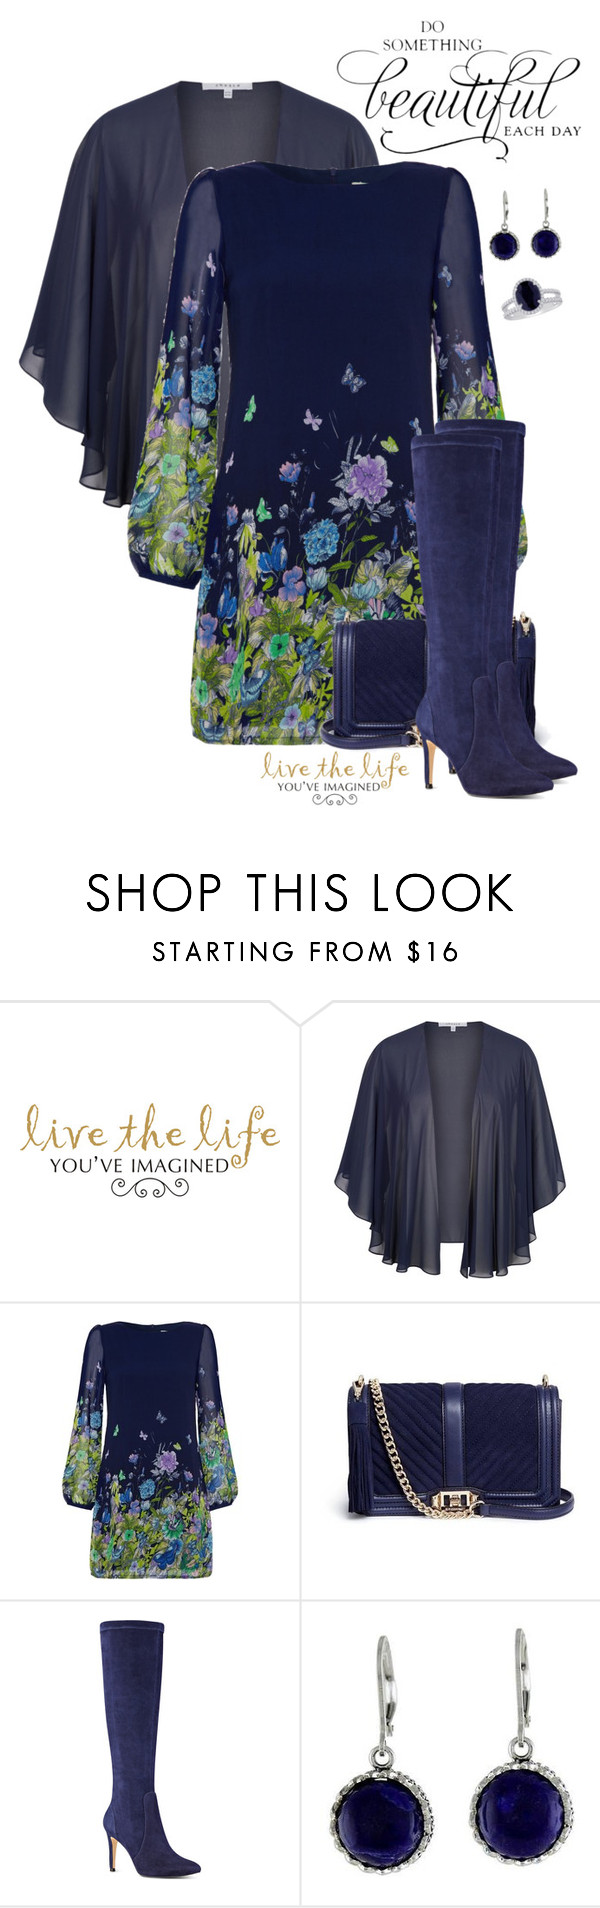 """""""Do Something Beautiful XXIX"""" by caili on Polyvore featuring WALL, Chesca, Yumi, Rebecca Minkoff, Nine West, NOVICA, ootd, LiveTheLife and dosomethingbeautiful"""